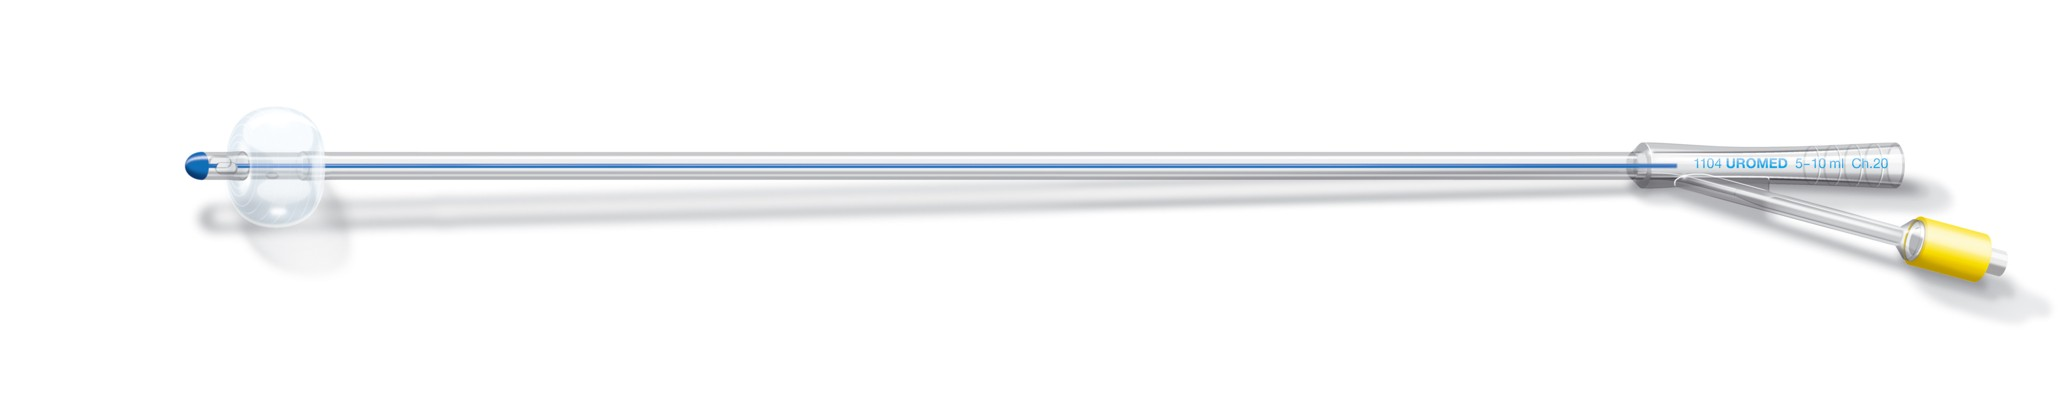 UROMED »SILUCENT« Silicone Balloon Catheter, short tip